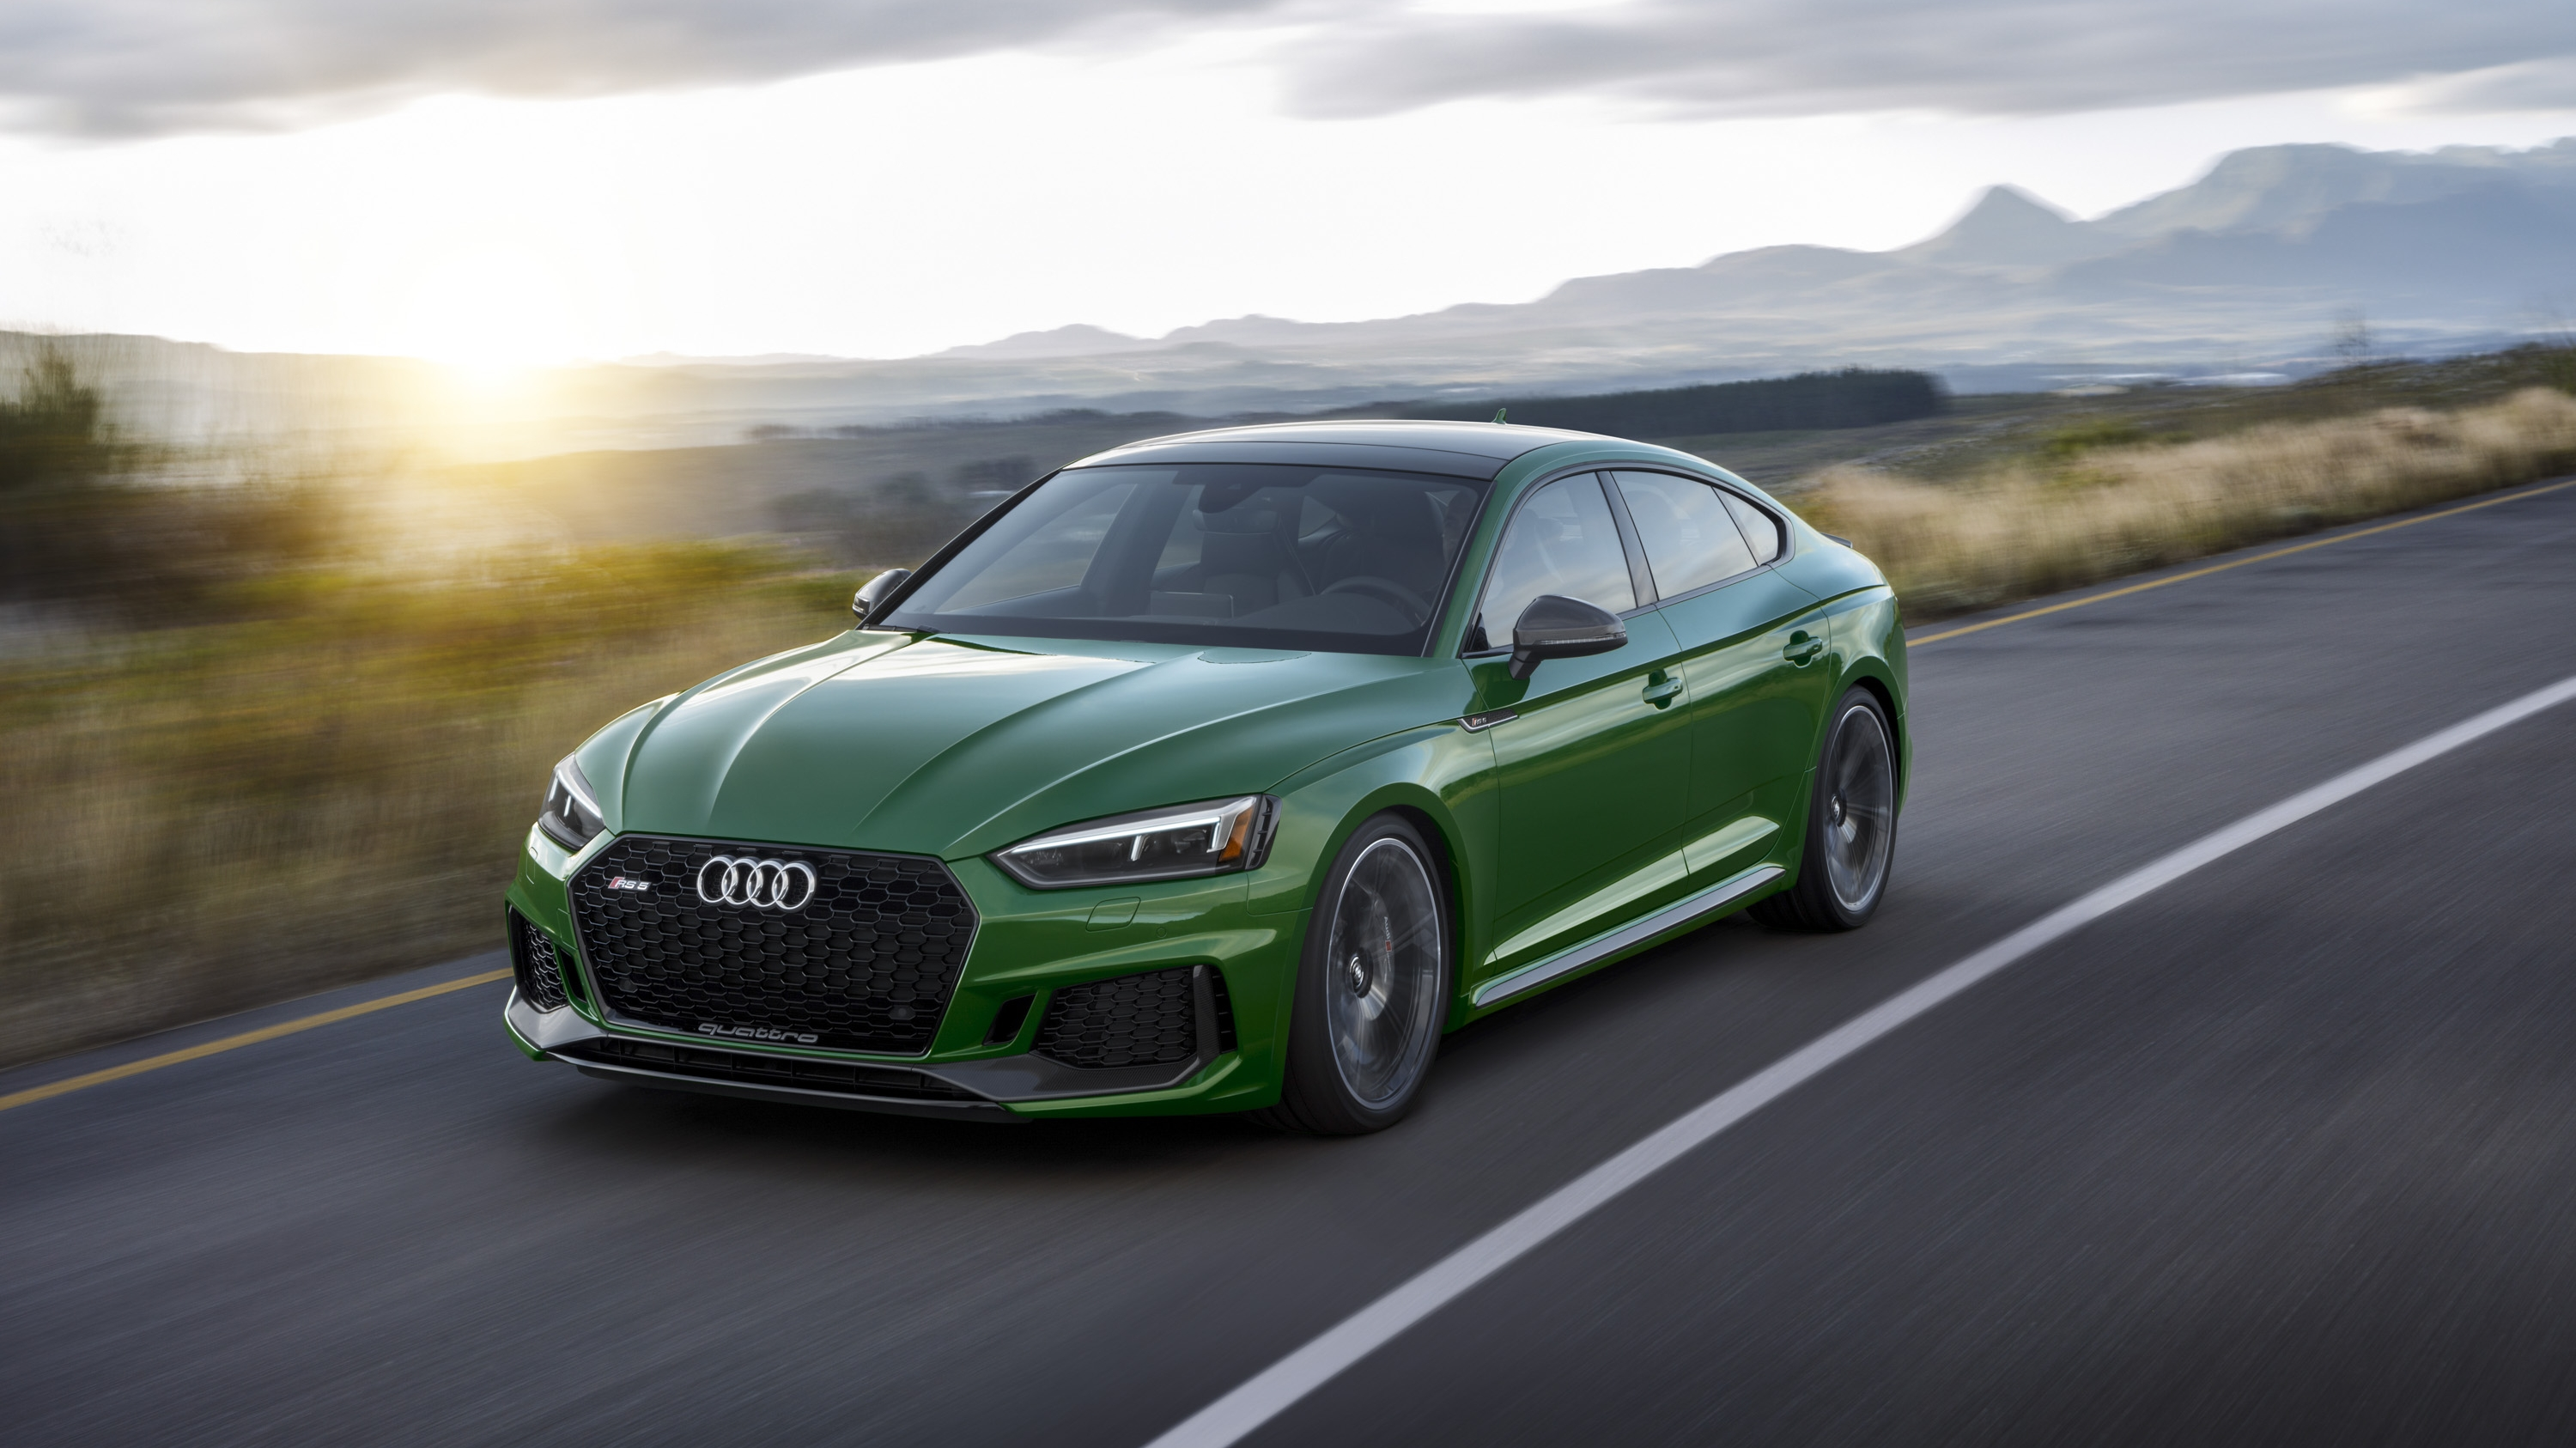 2019 Audi RS5 Sportback | Top Speed